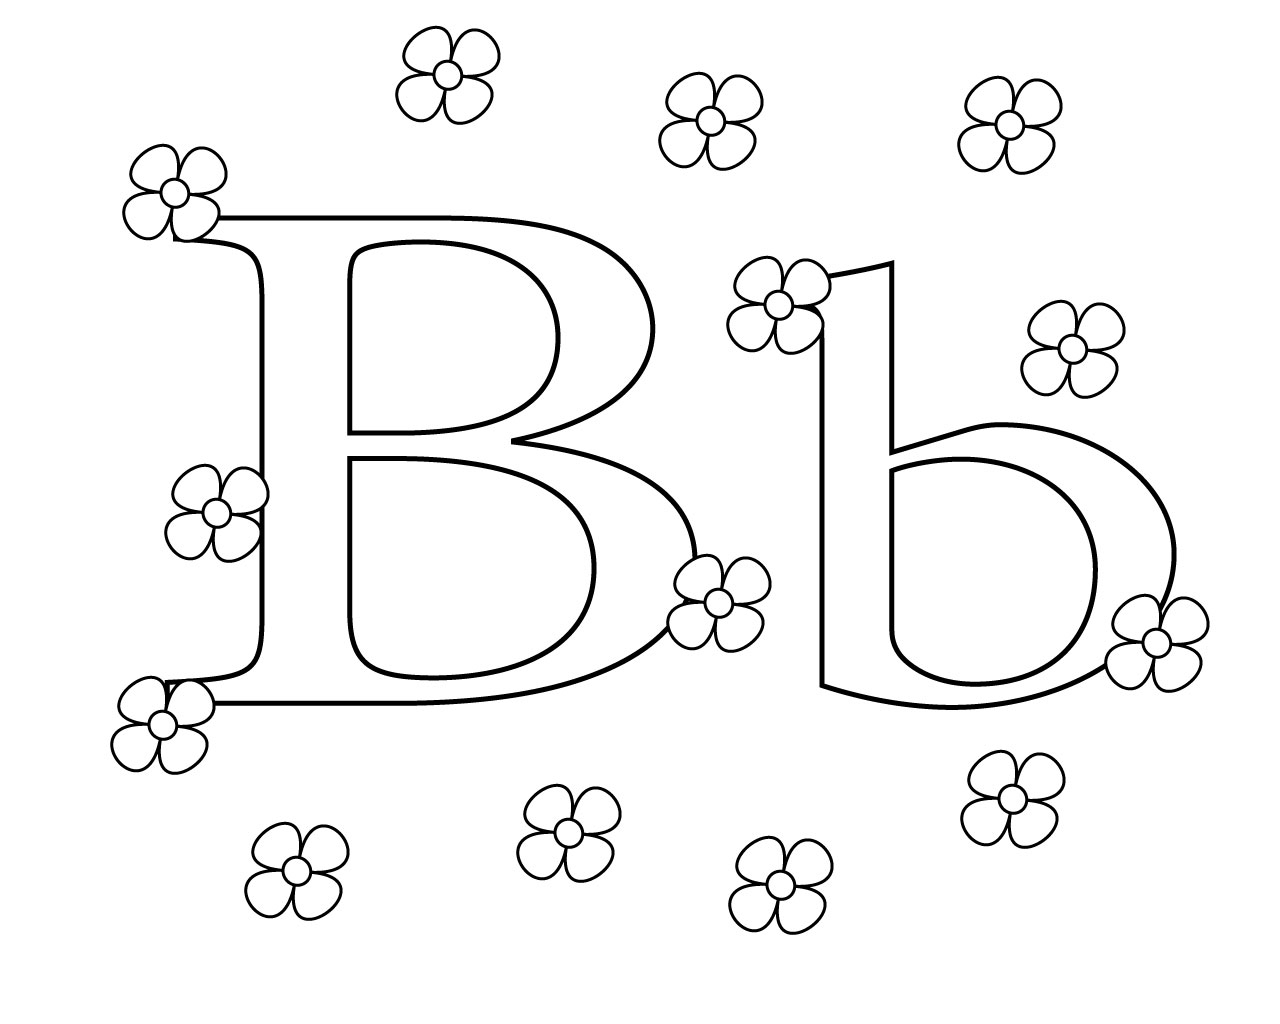 Letter B Coloring Pages Printable Letter B Coloring Pages For Kids